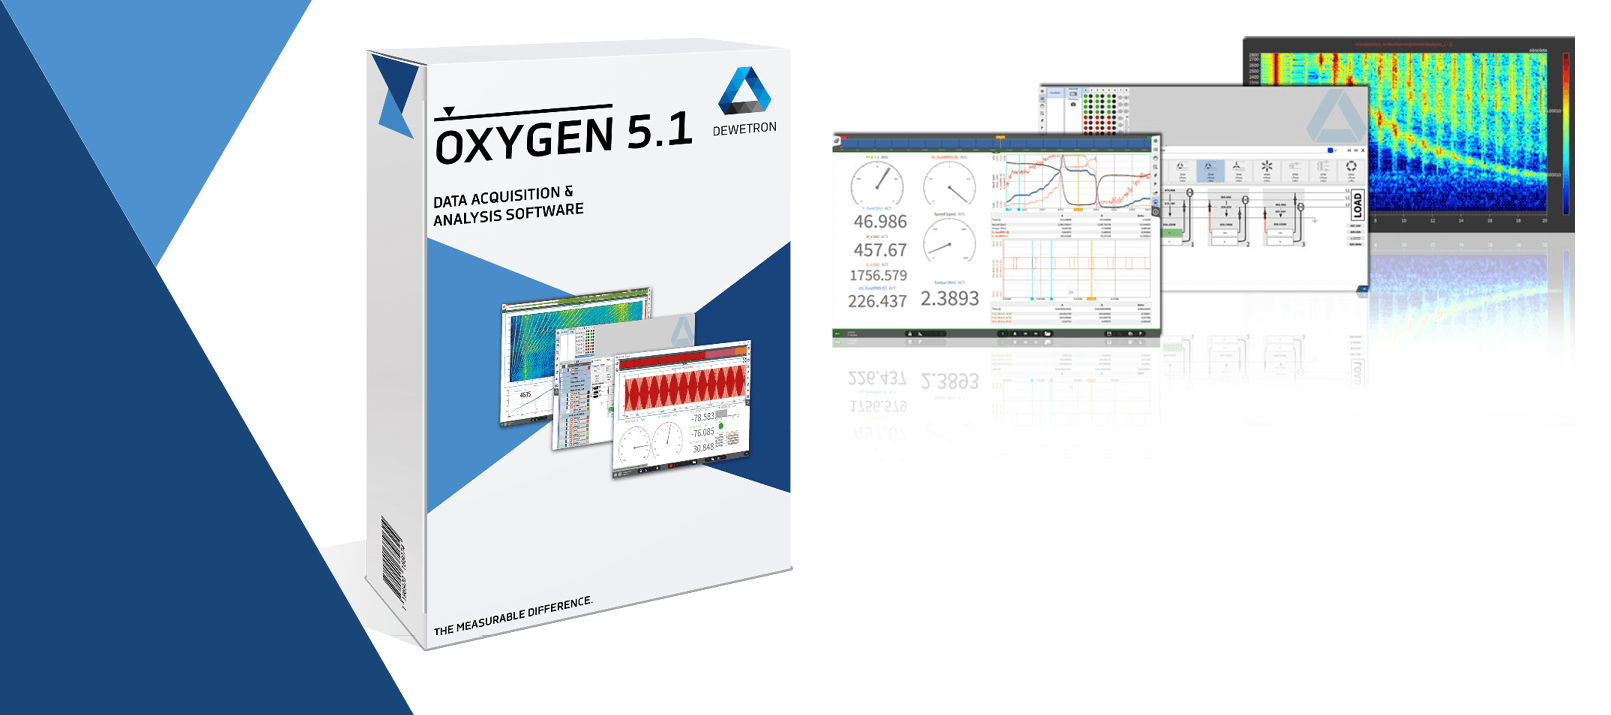 OXYGEN 5.1 packaging